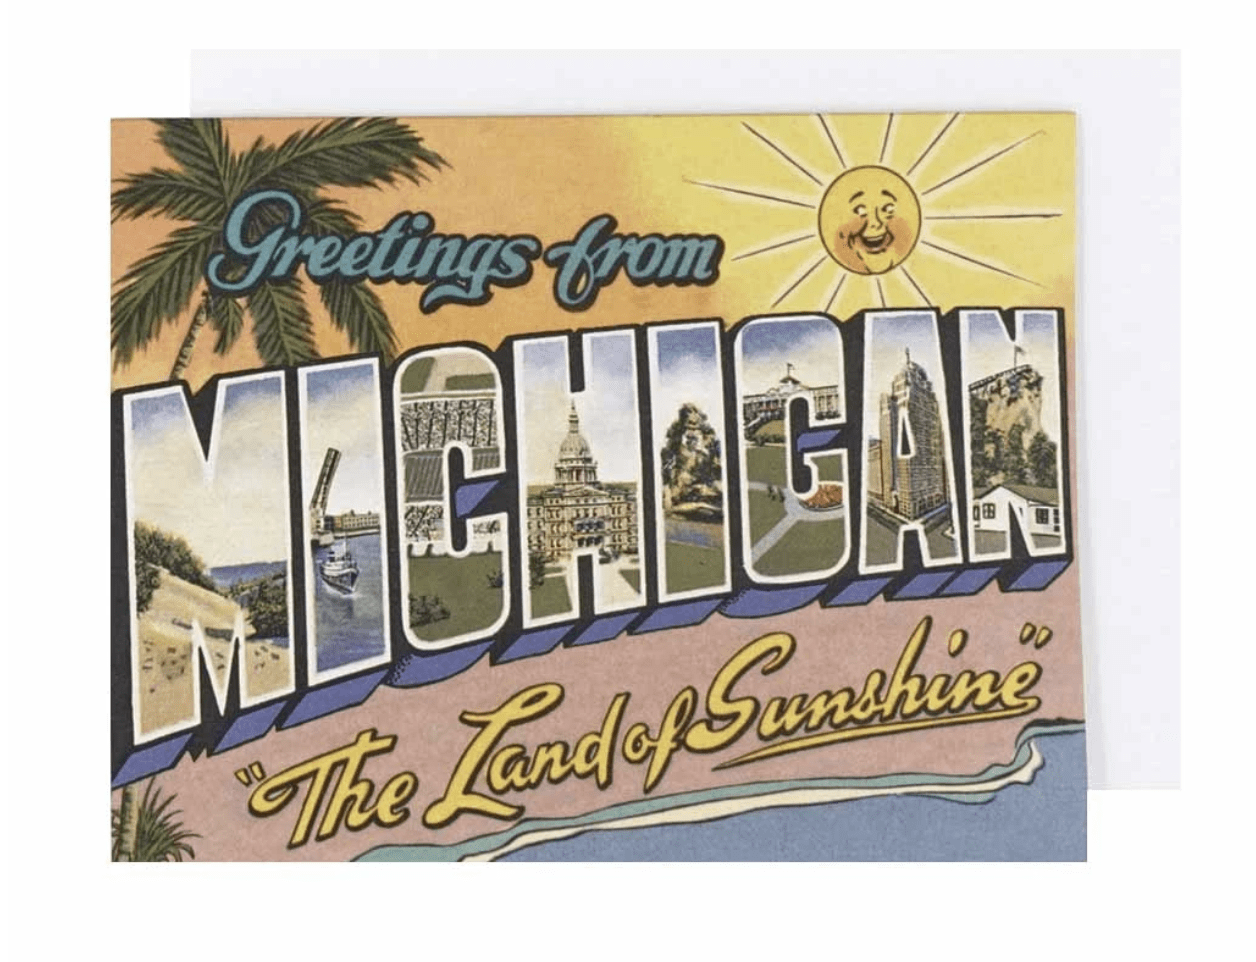 Greetings From Michigan Land of Sunshine Card